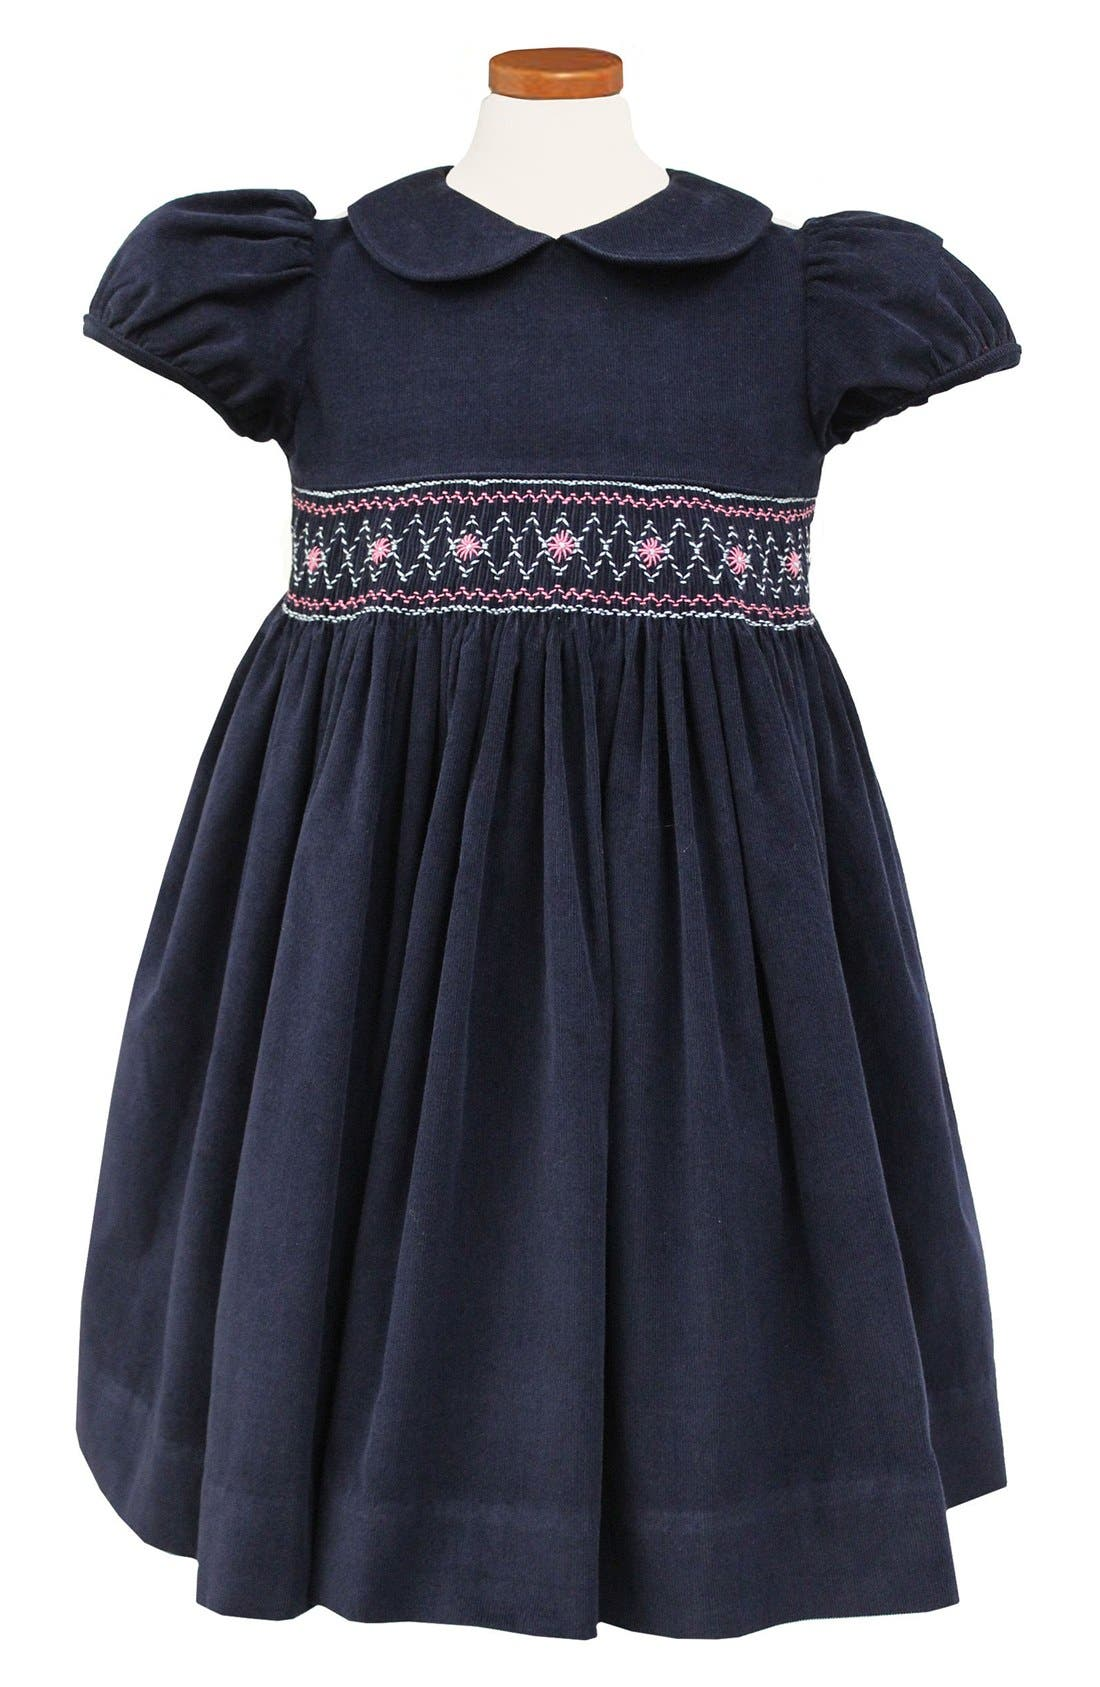 Embroidered Smocked Waist Dress,                             Main thumbnail 1, color,                             Navy